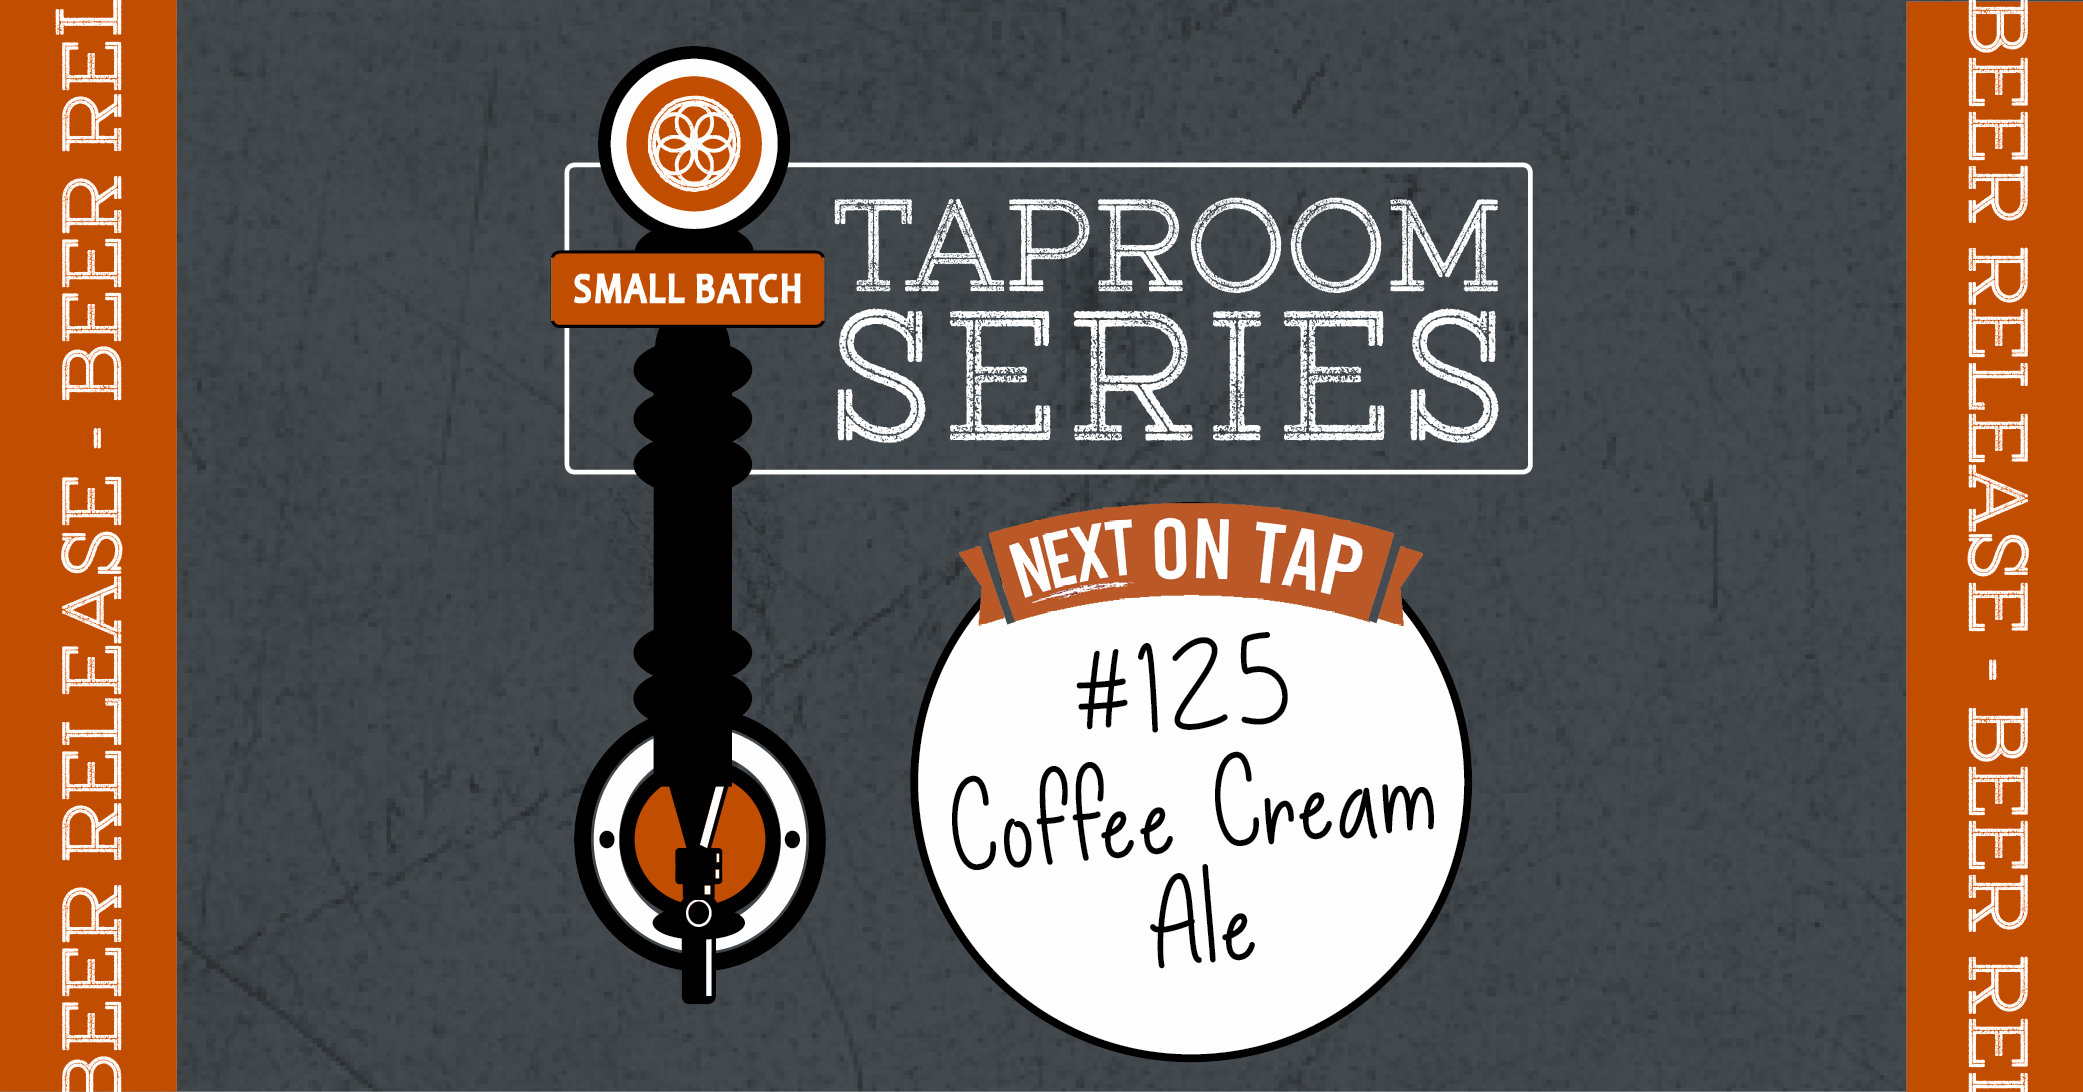 Taproom Series_FB Event Cover_125 Coffee Cream Ale.png